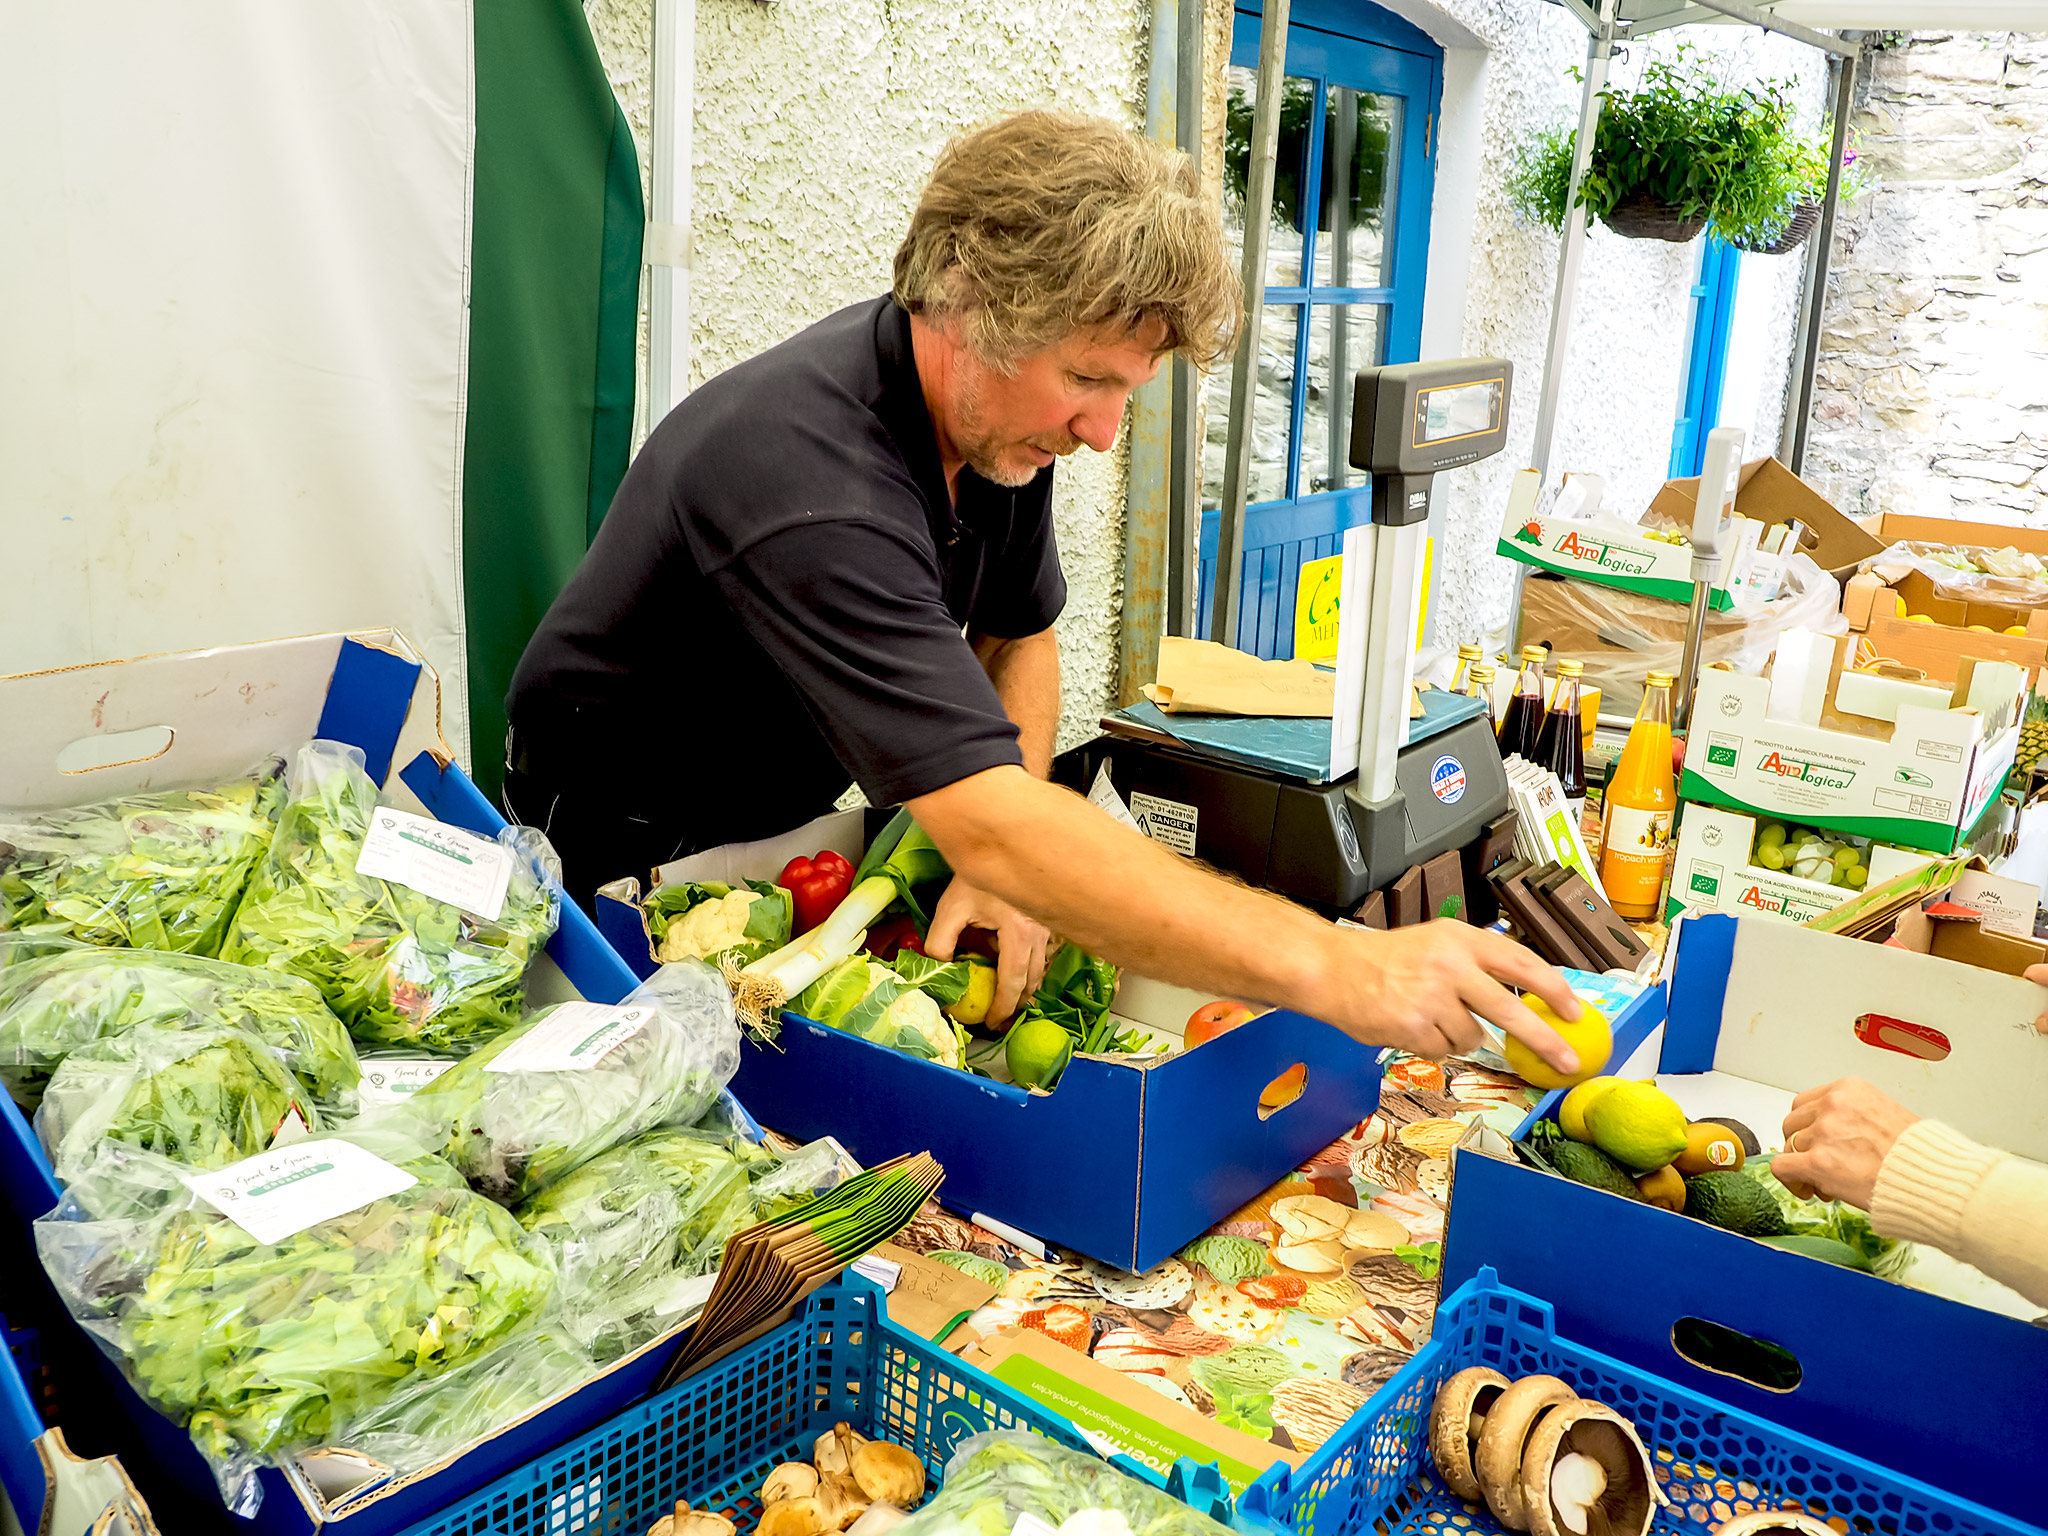 Adrian from Good & Green Organics, Boyle Courtyard Market, County Roscommon.